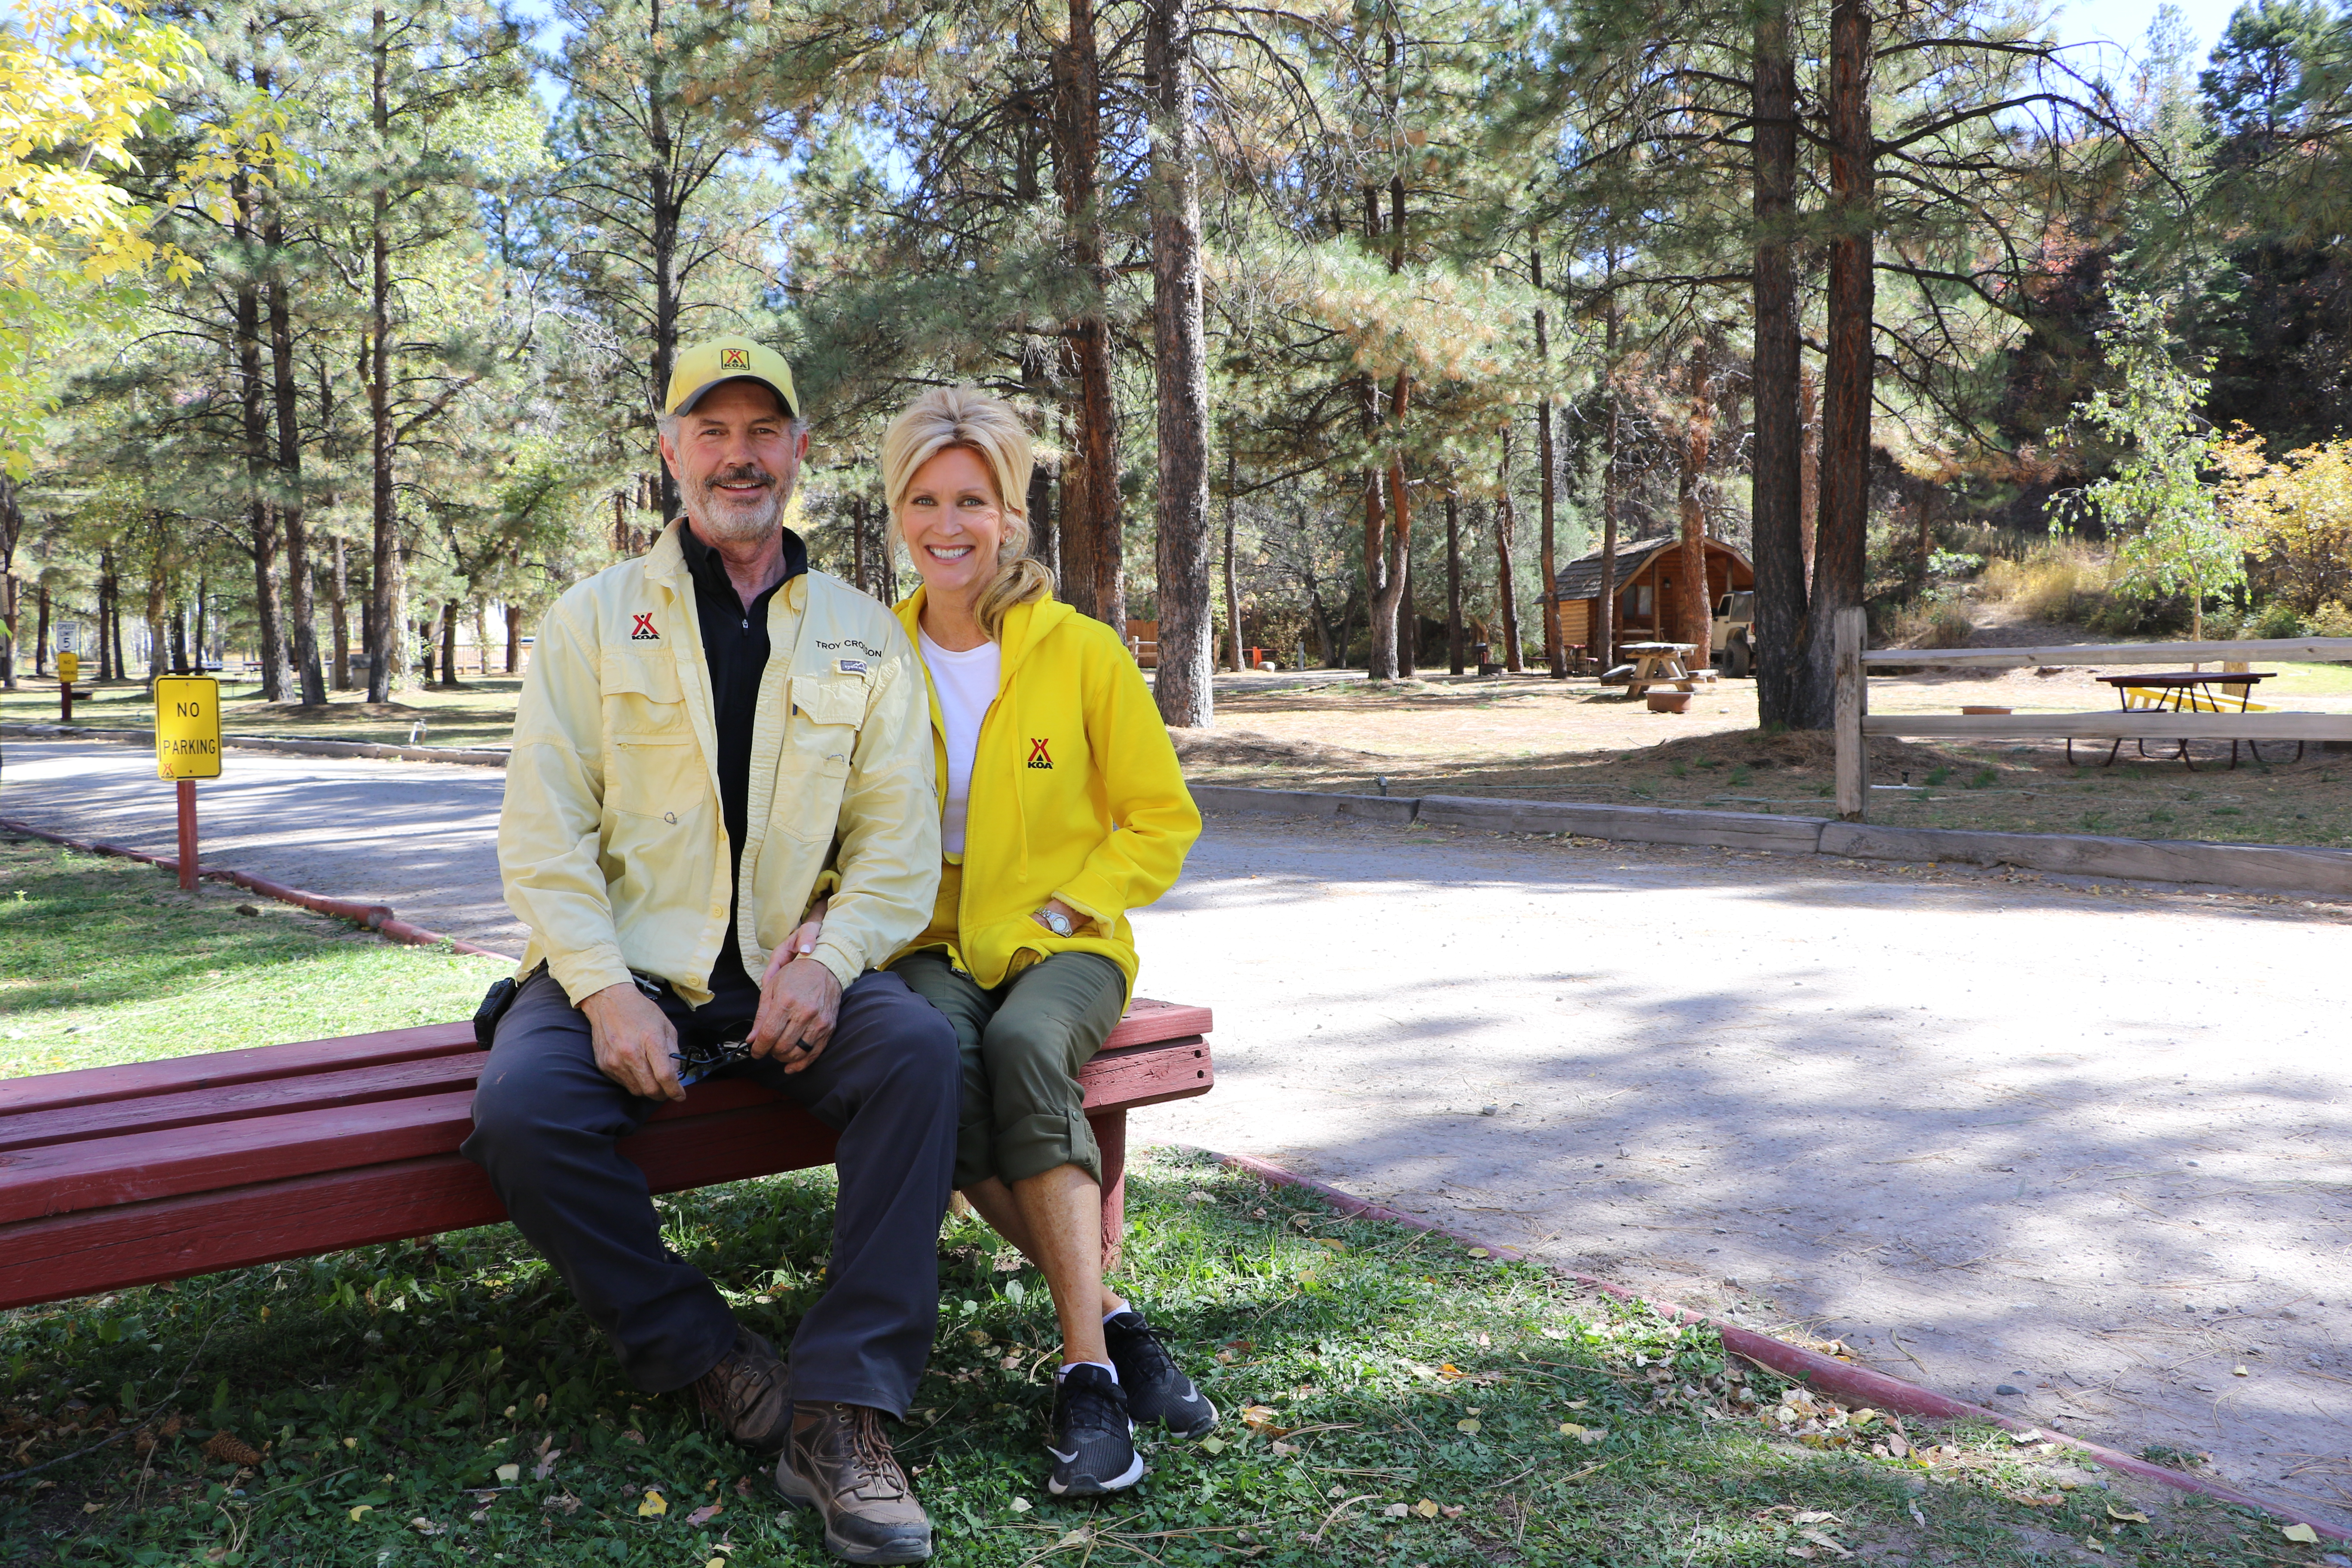 Troy and Penny Crosson, who took over management of the Ouray KOA earlier this month and are scheduled to close on the purchase of the campground in January, will keep the campground open for the winter for the first time in its history in the hope of filling cabins like the one in the background. Plaindealer photo by Erin McIntyre